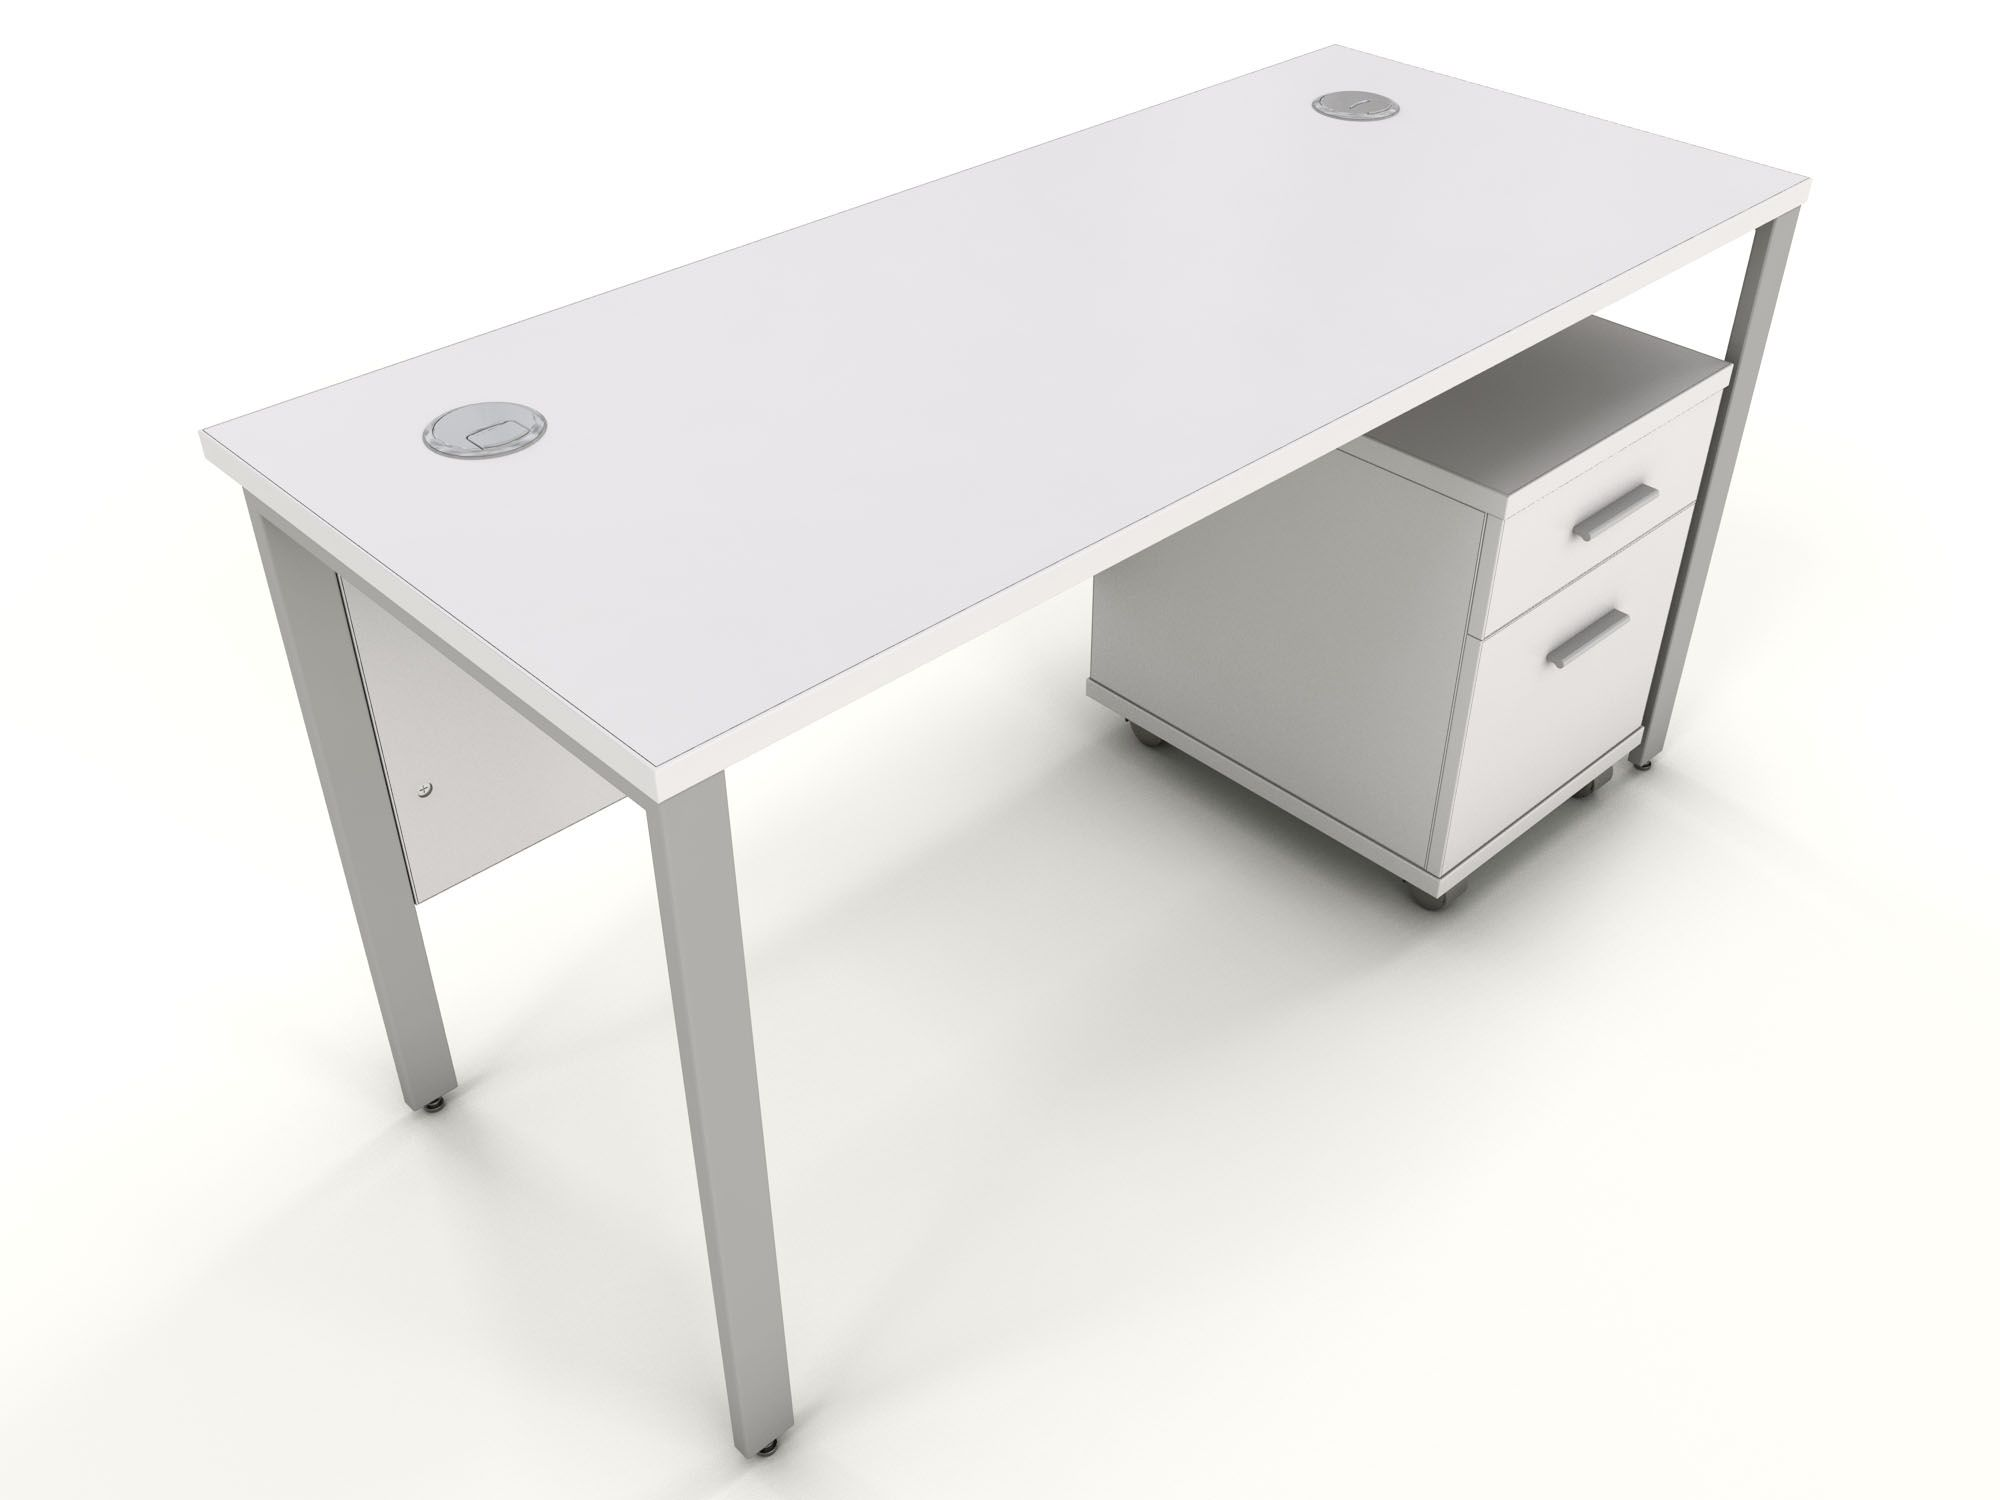 inexpensive office desks. 1200mm X 600mm White Bench Desk With Cable Access Ports From The UK\u0027s Leading Discount Office Inexpensive Desks N